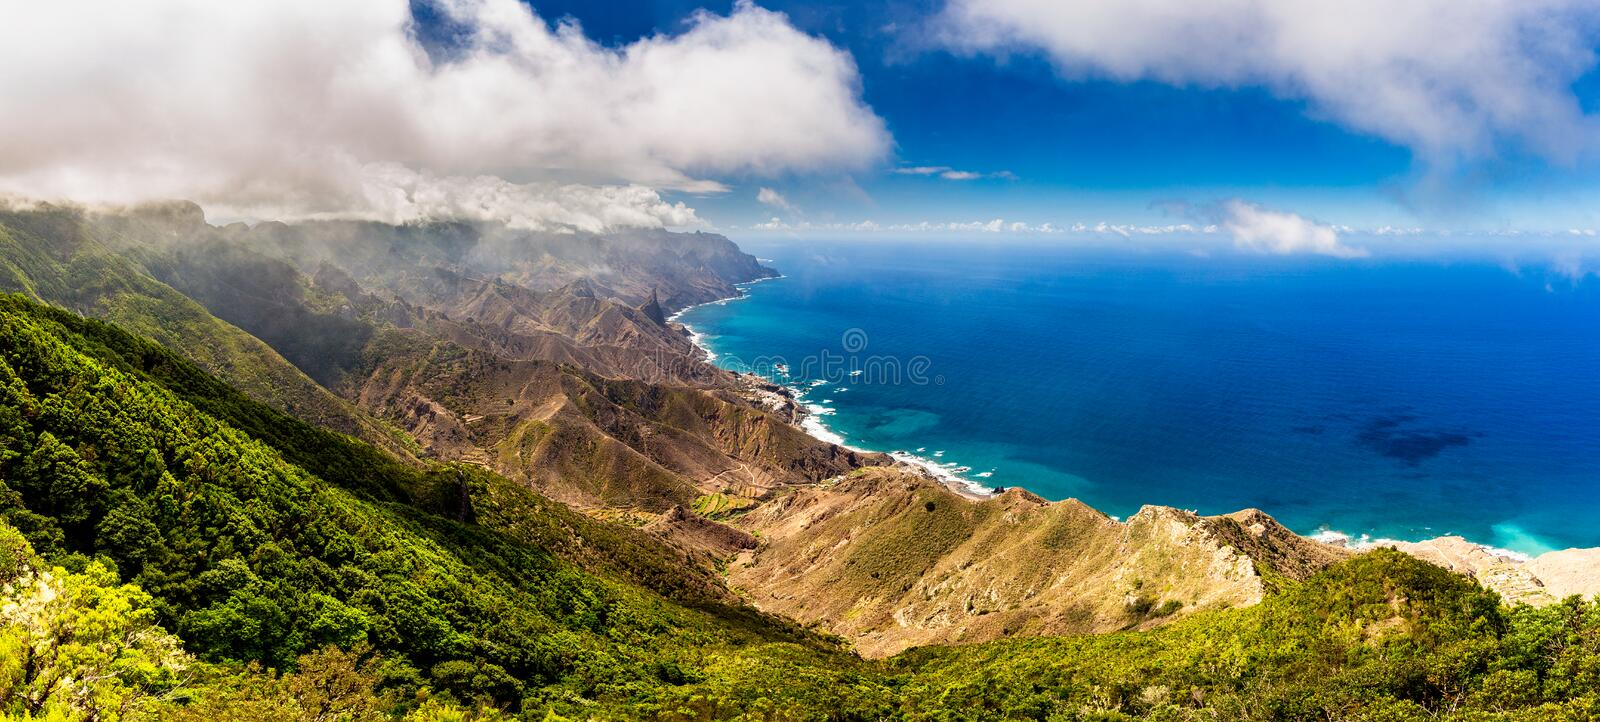 Panoramic landscape in Anaga mountains, Tenerife Canary Islands, Spain stock images